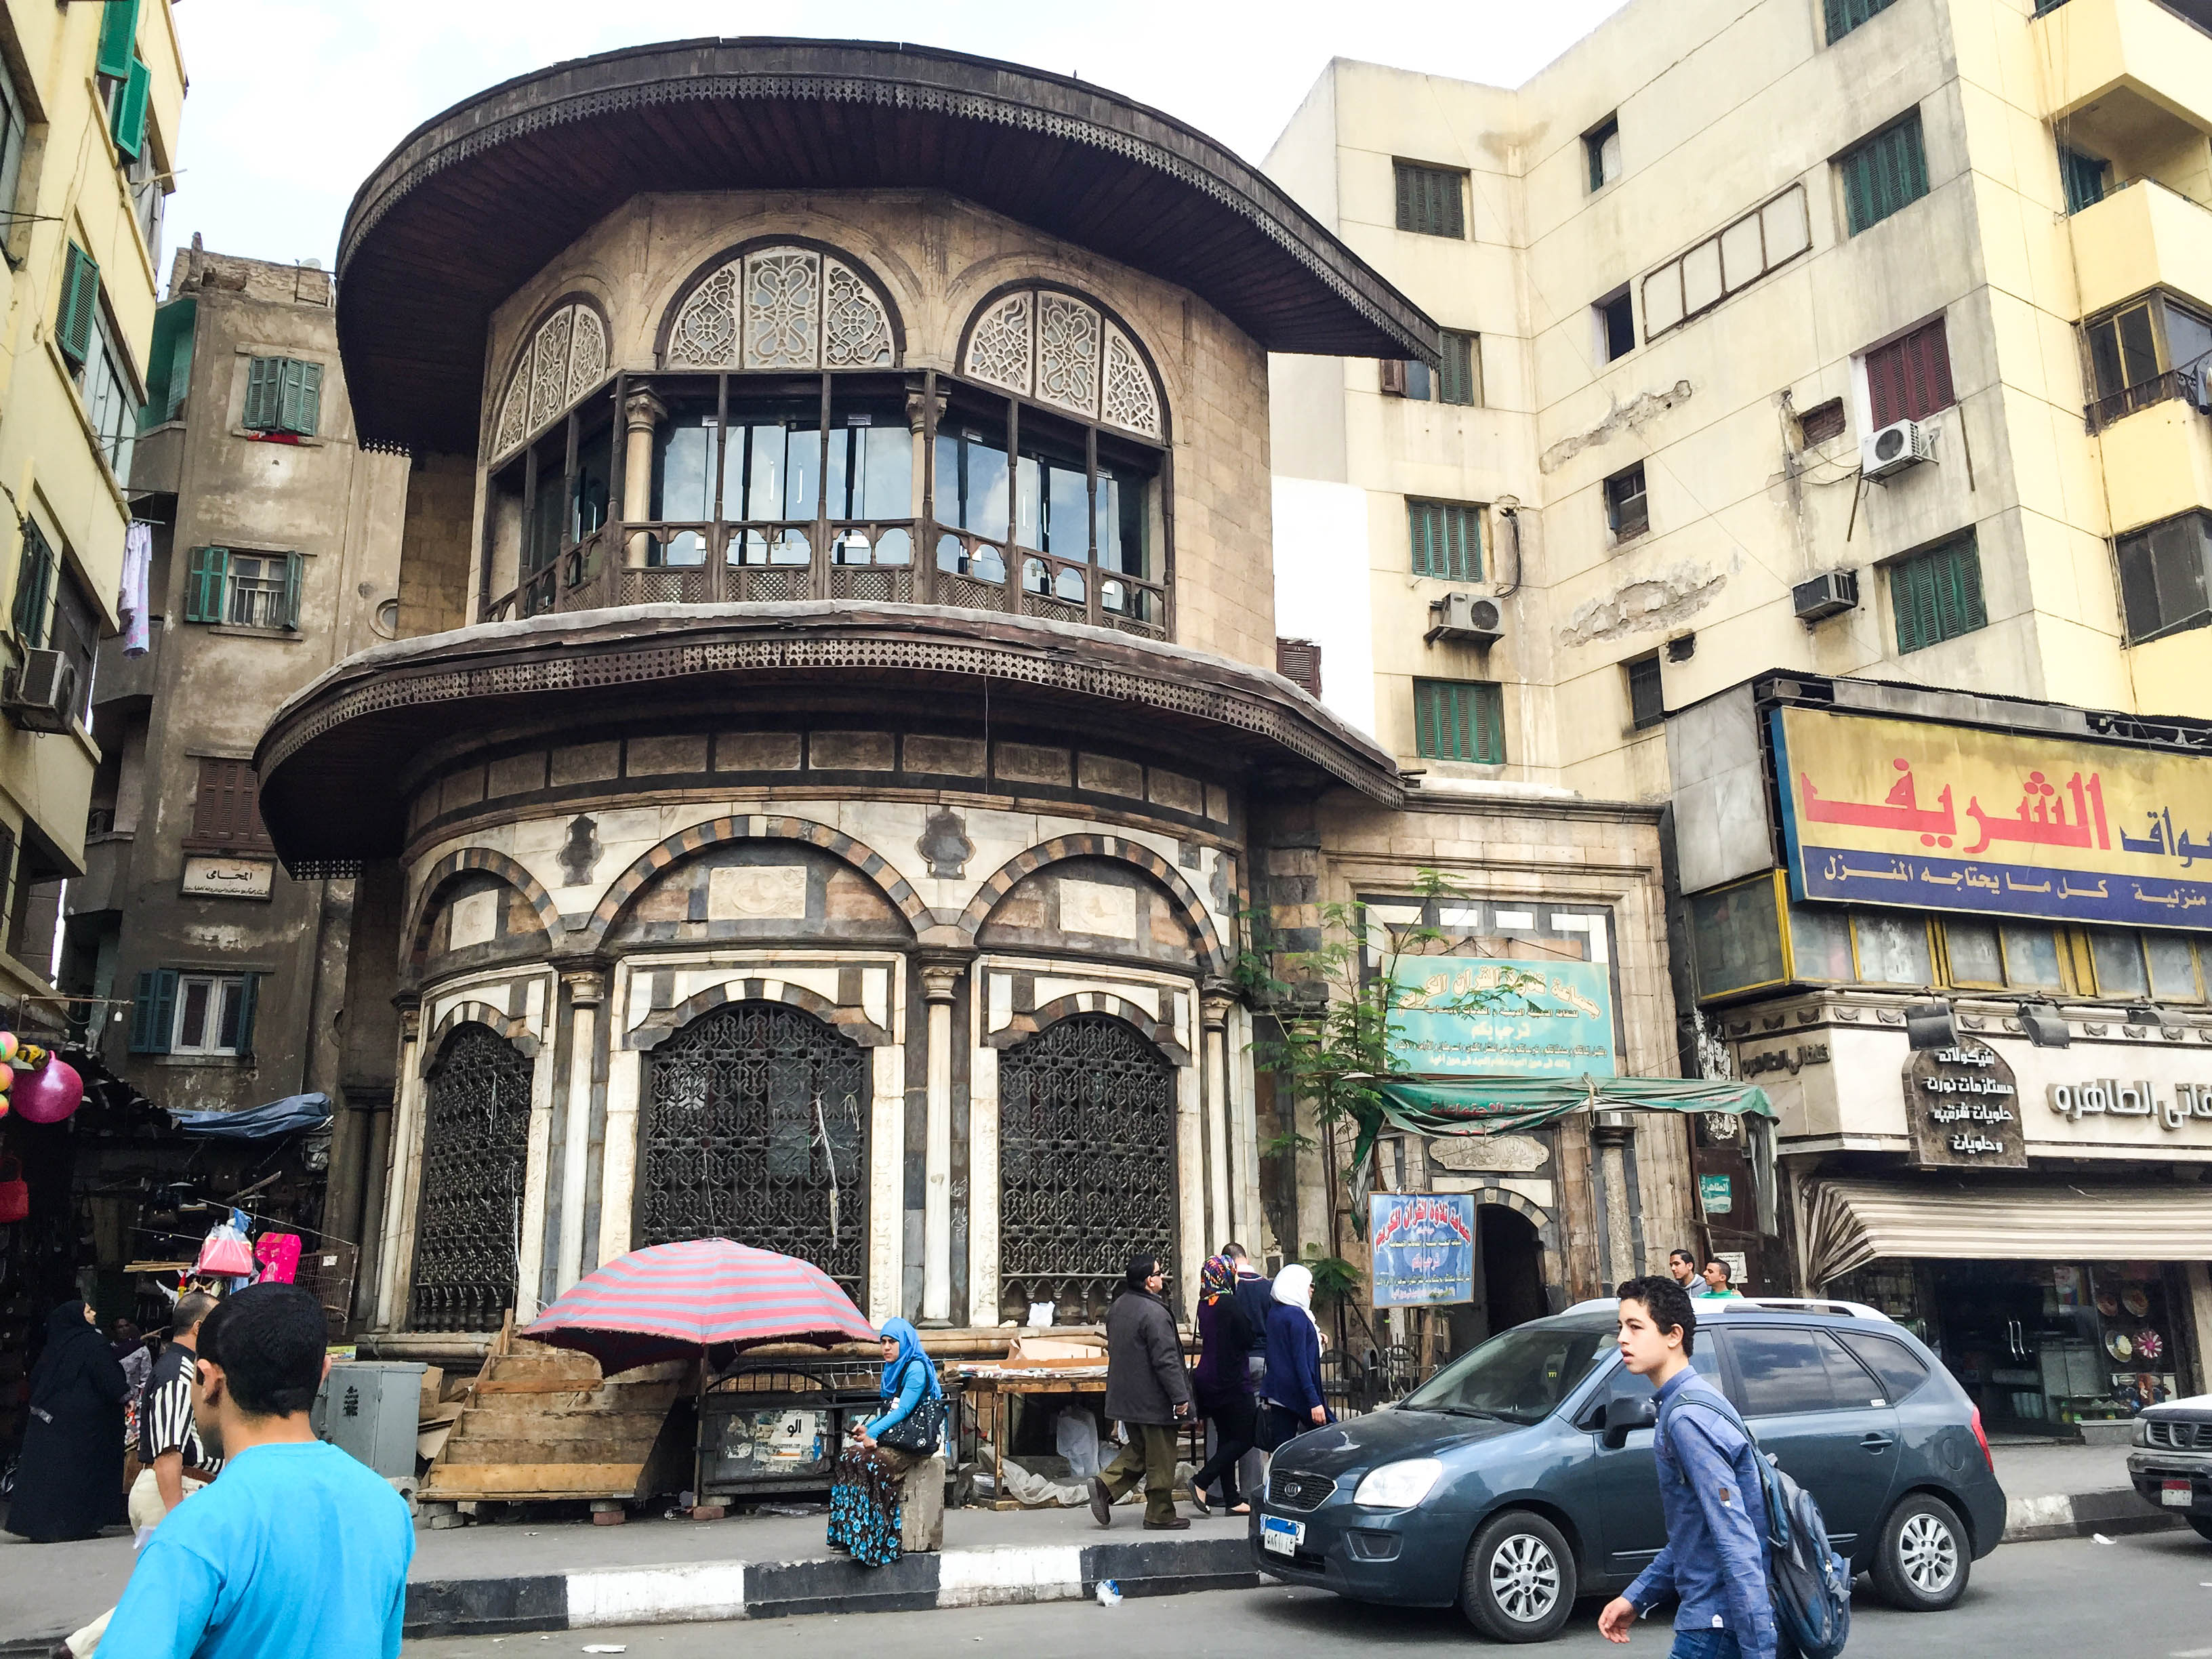 Busy street in downtown Cairo, Egypt